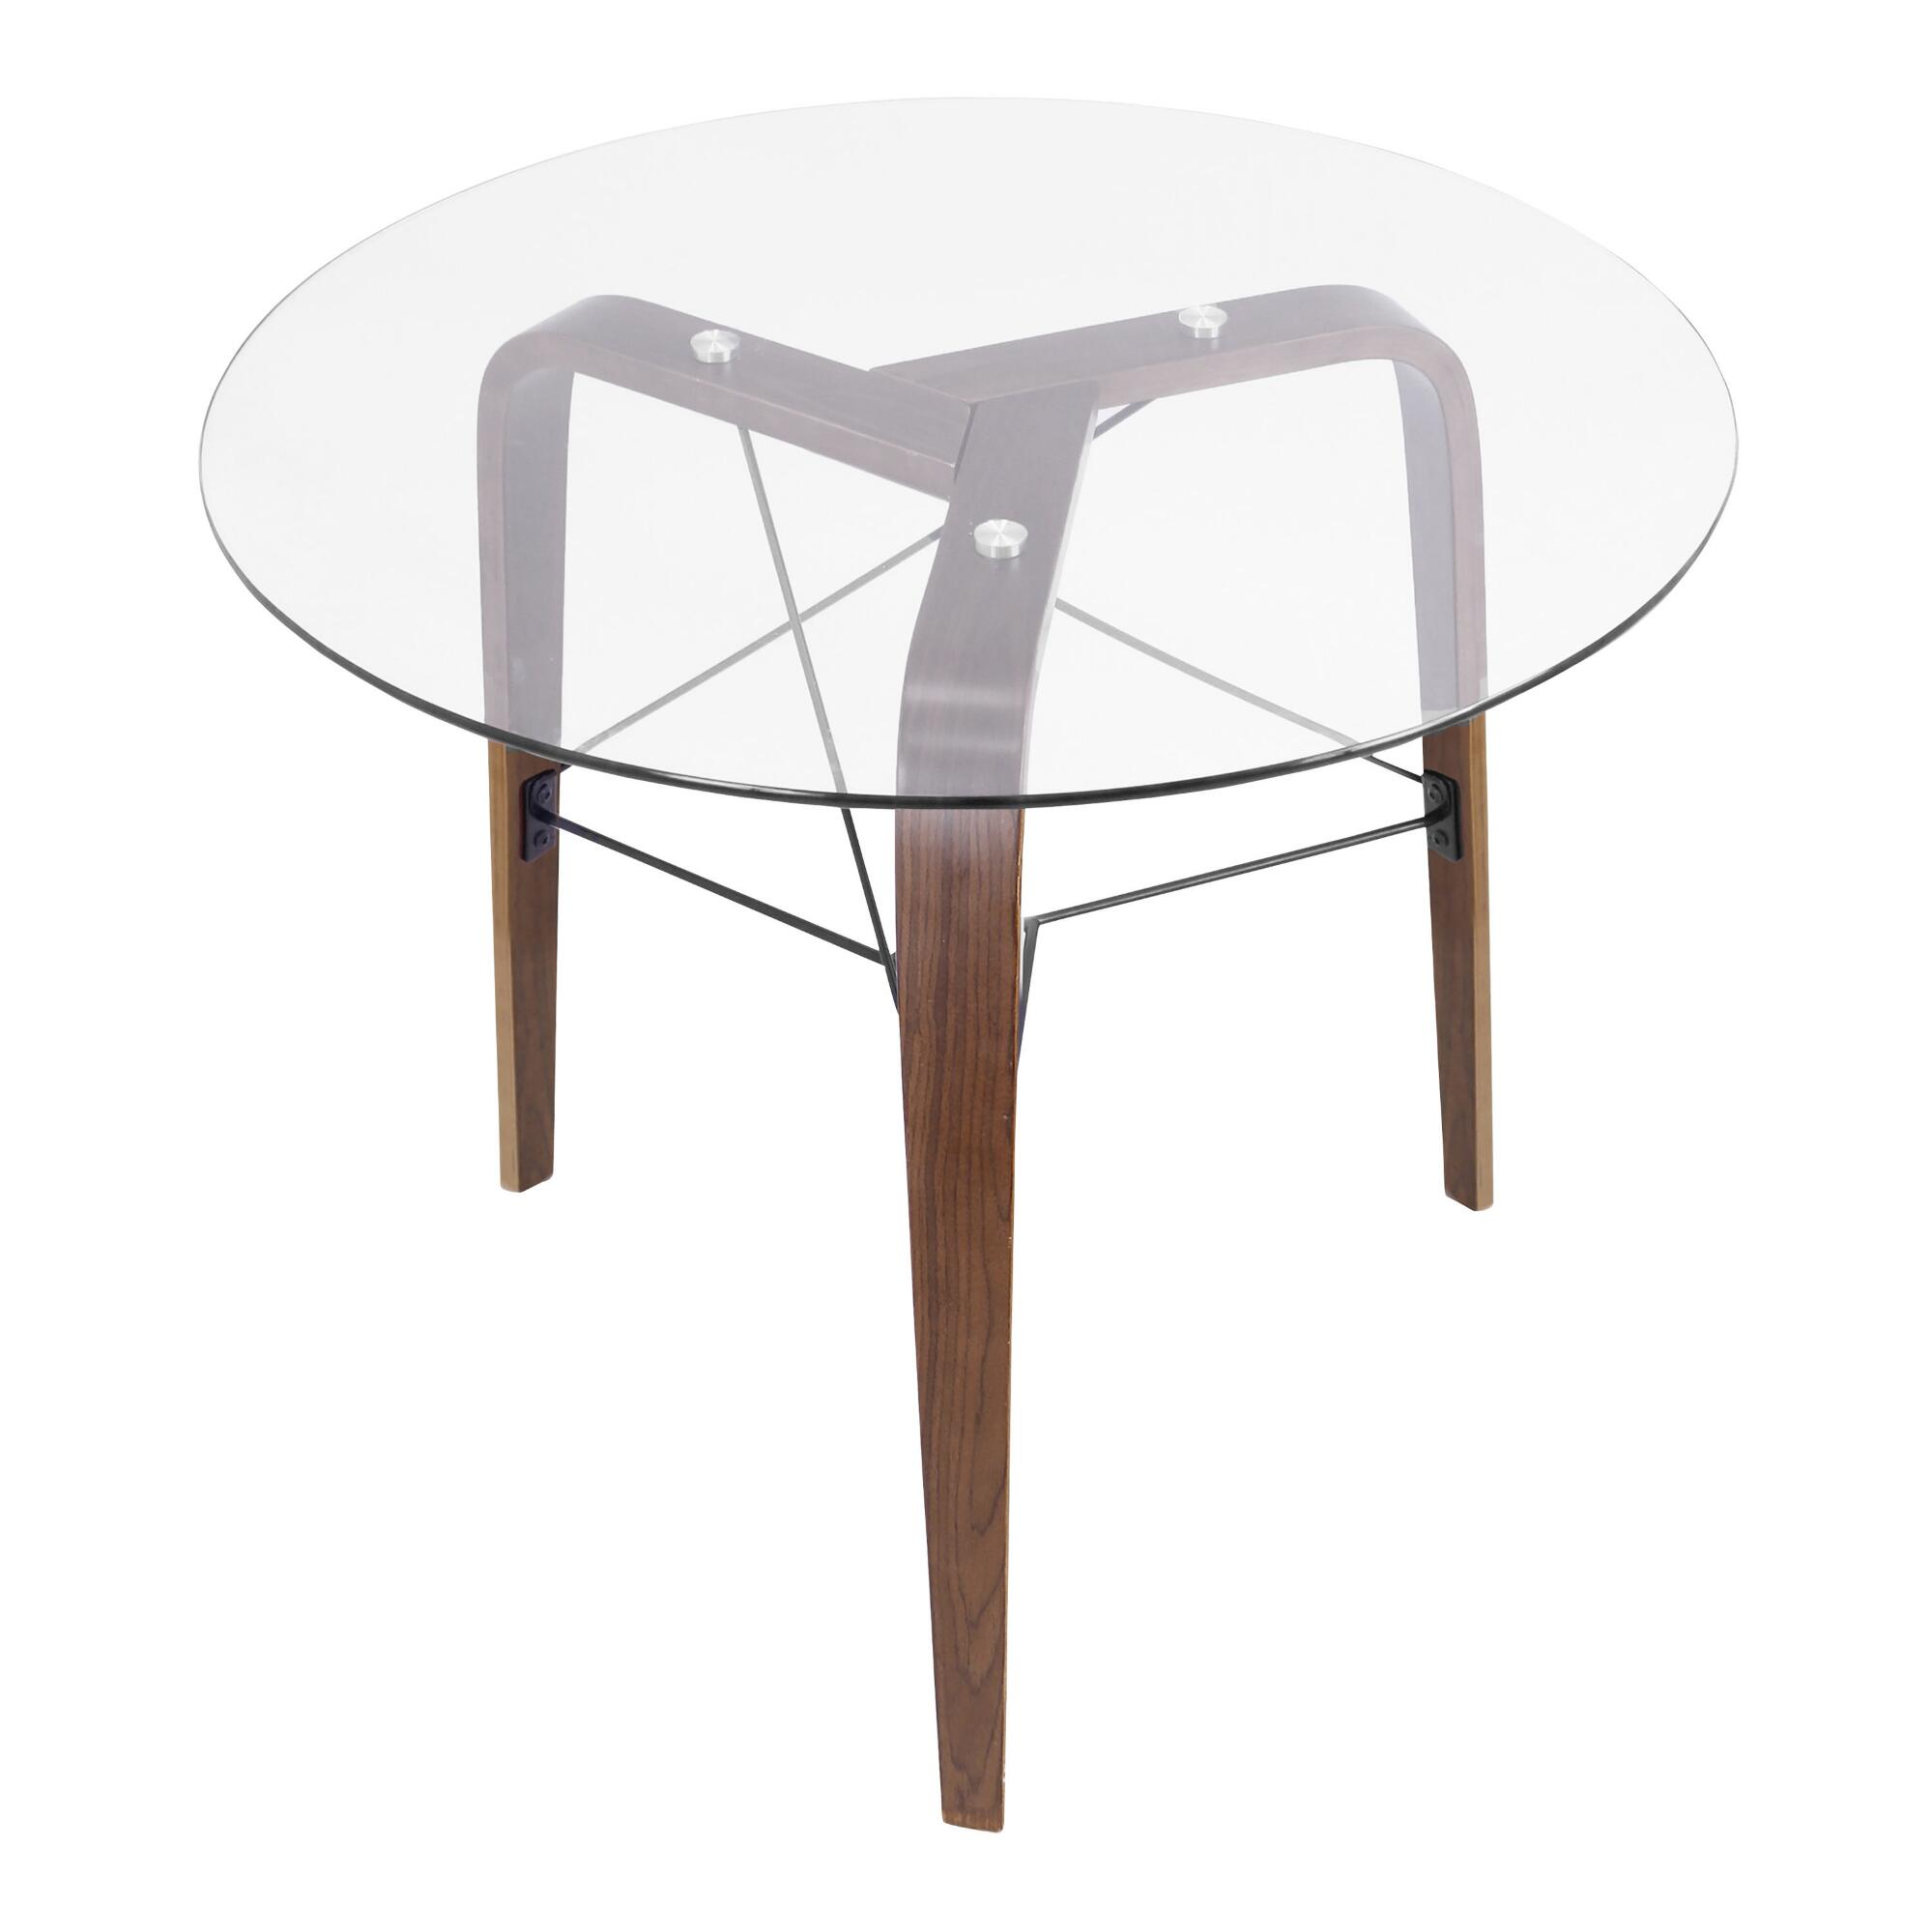 Round Wood and Glass Kirk Dining Table - Small by World Market